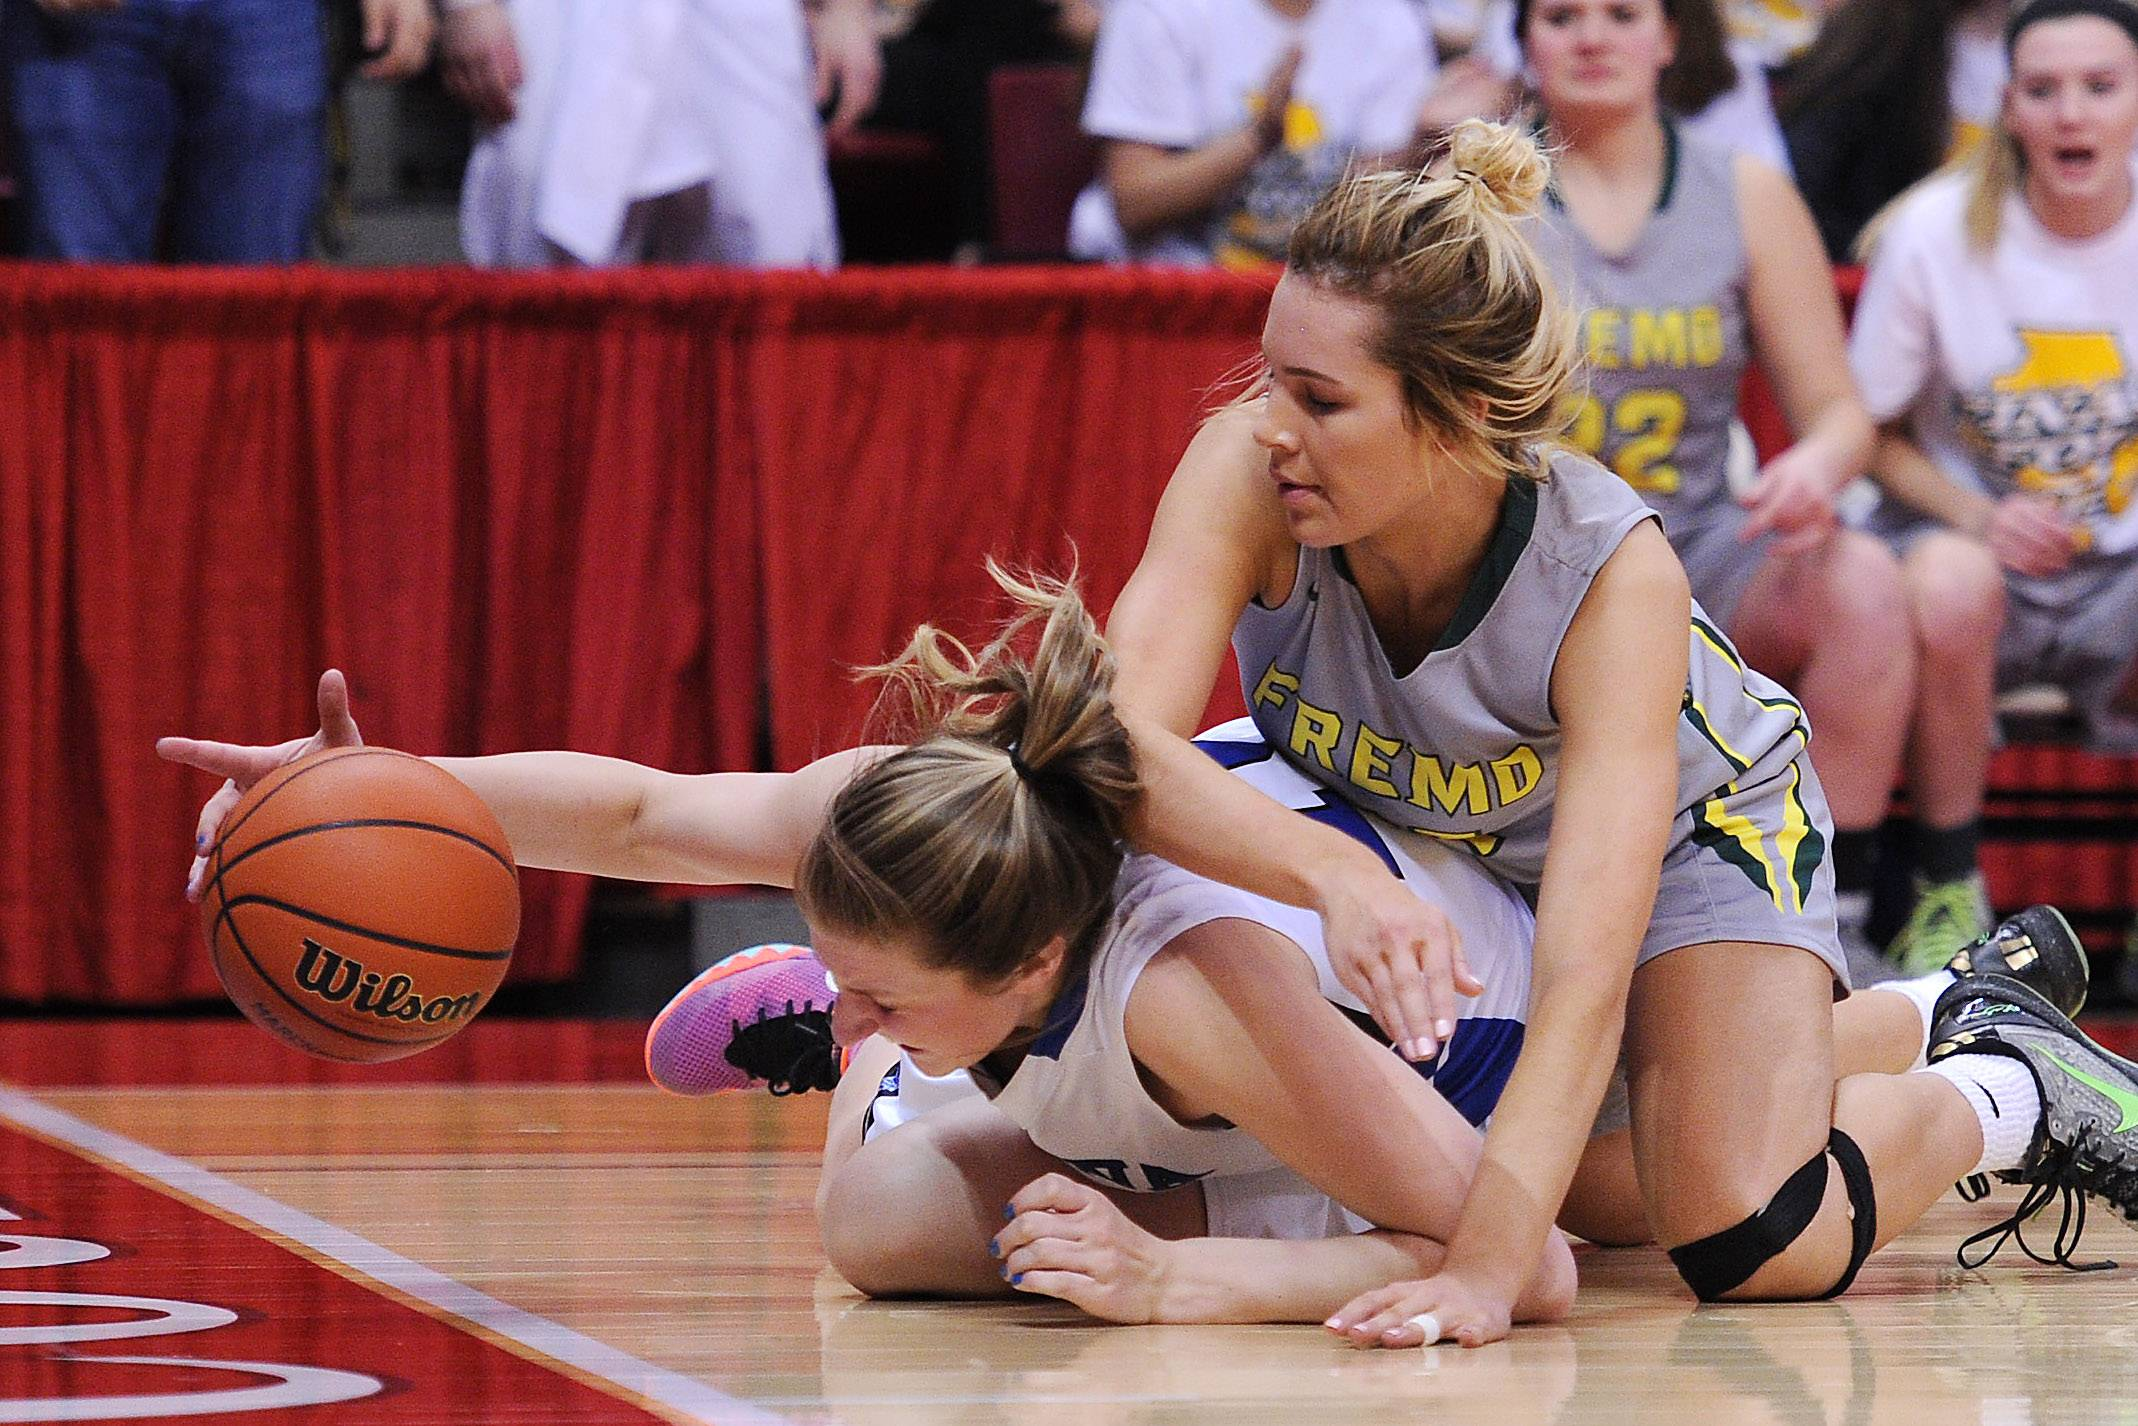 Geneva's Grace Loberg reaches for a loose ball as Fremd's Grace Tworek applies pressure in the first half of the Class 4A girls basketball state semifinals in Normal on Friday.